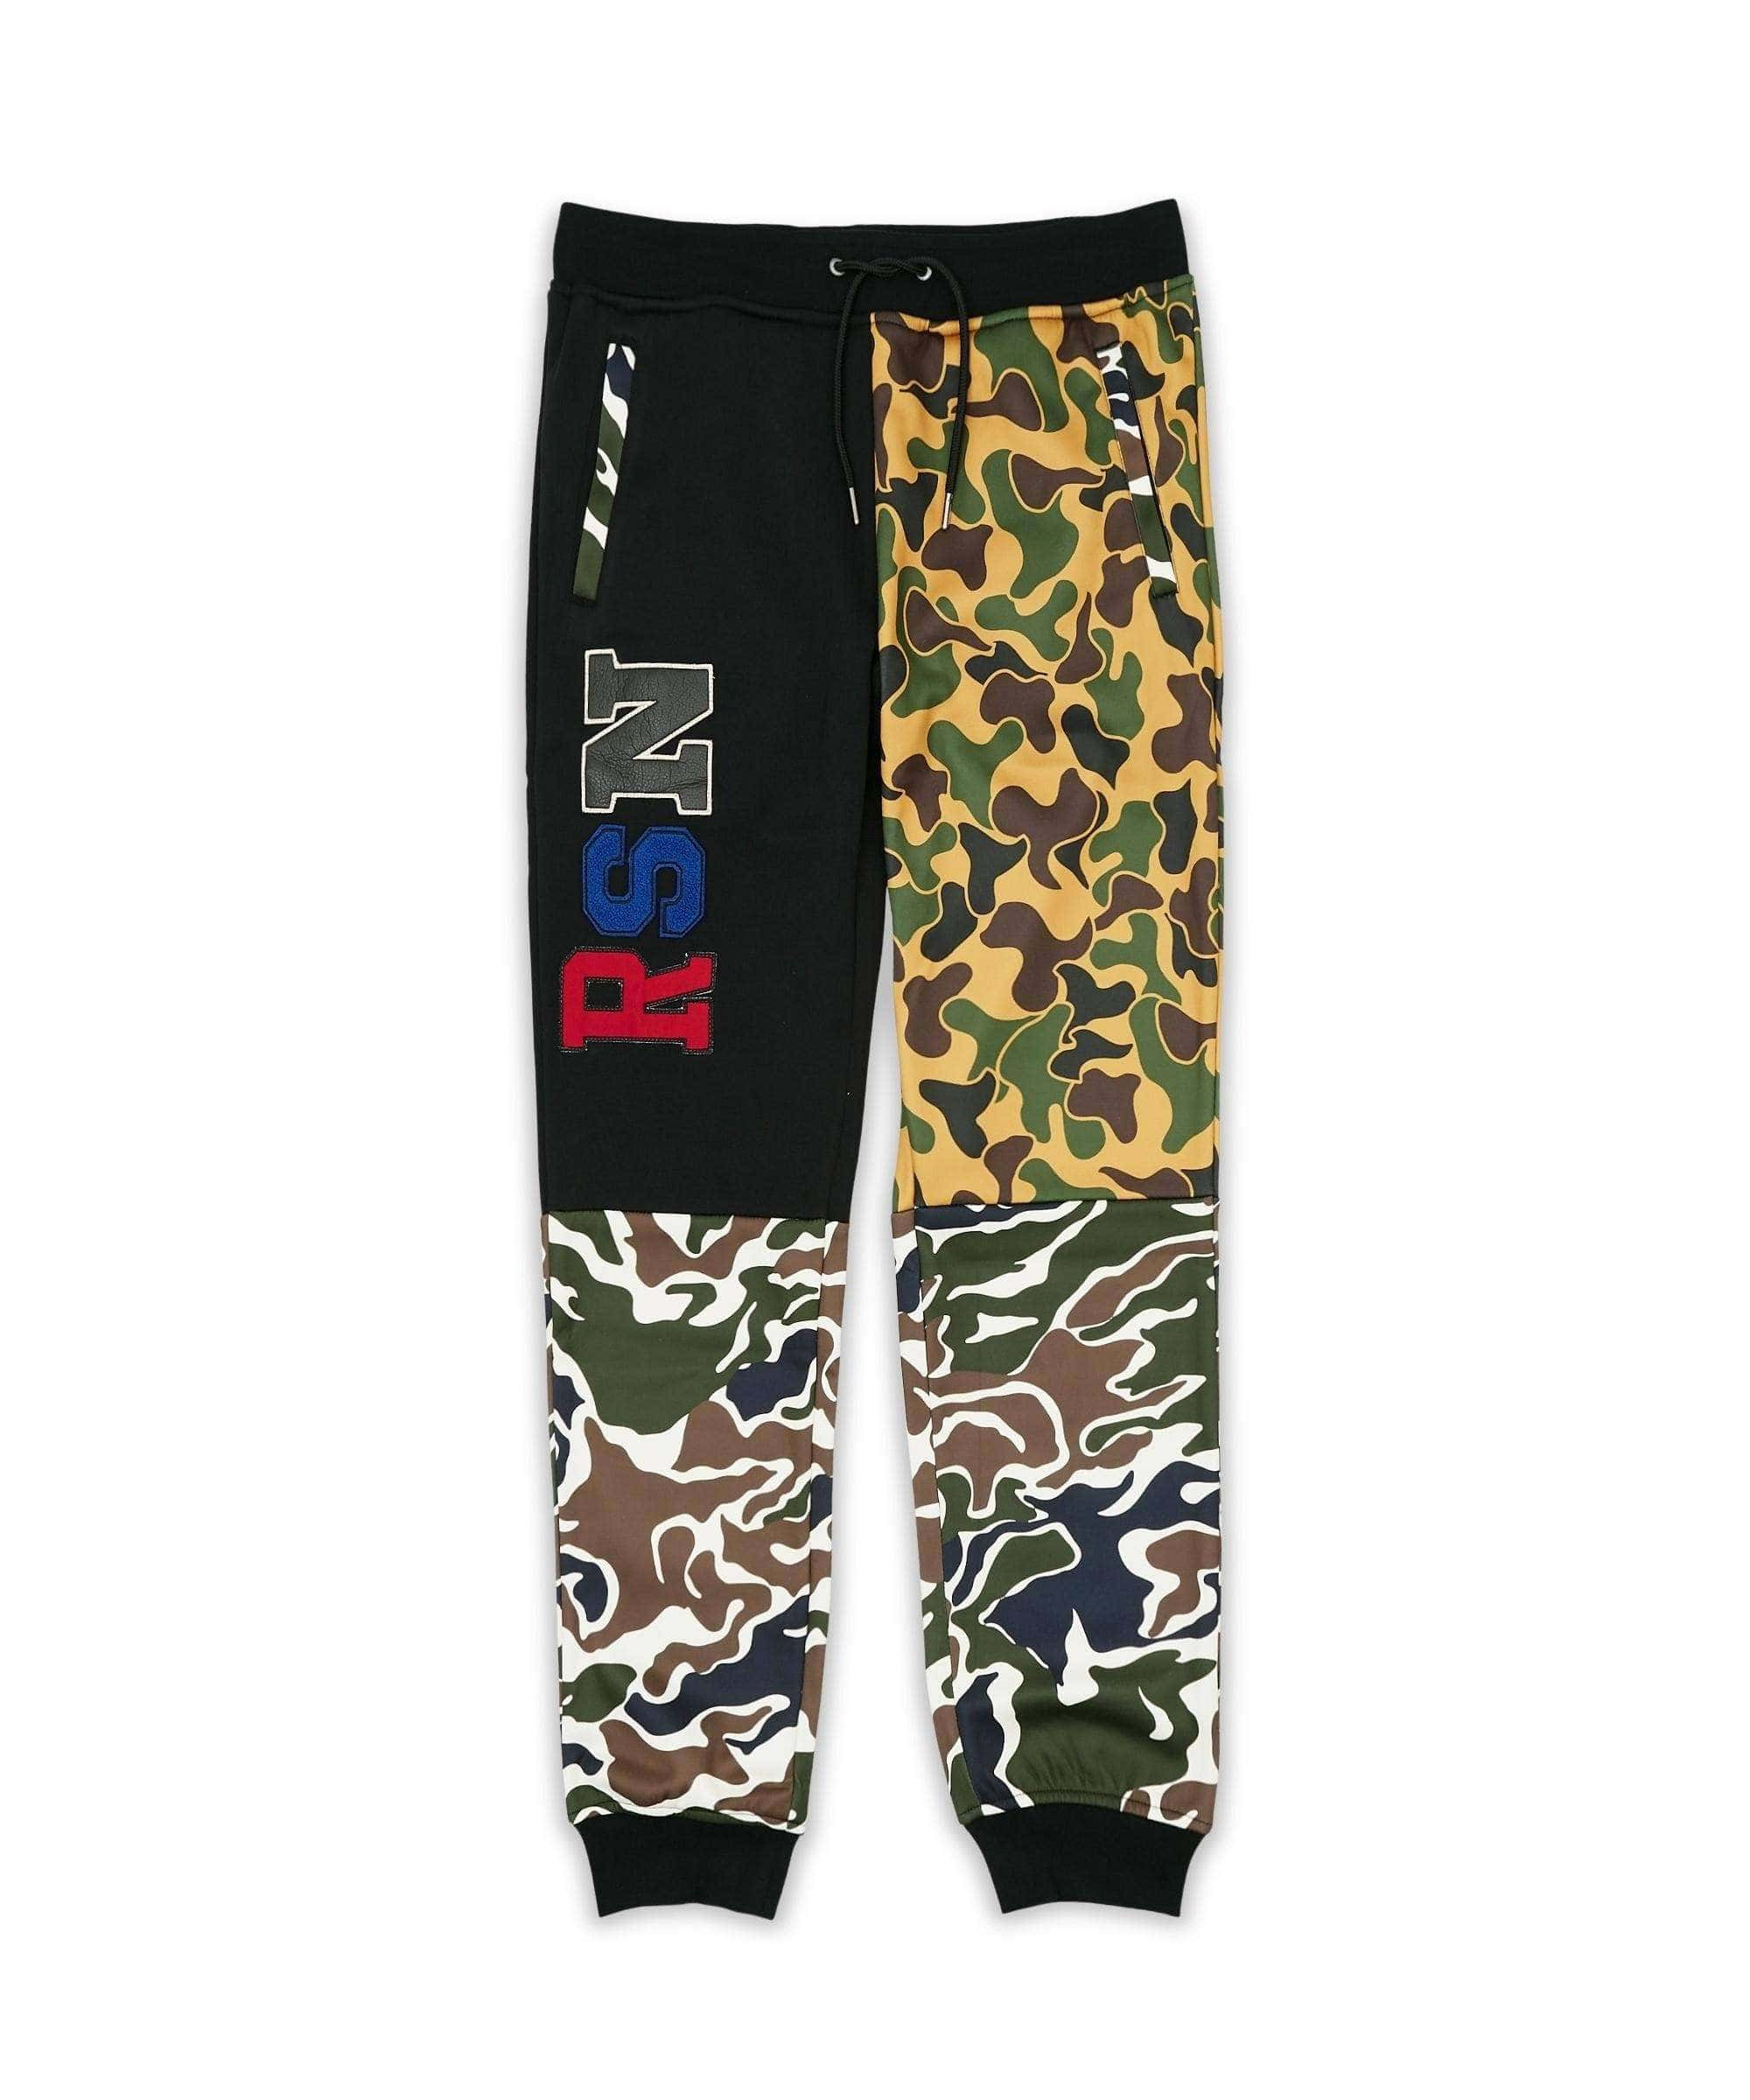 ROCKET SWEATPANTS Reason Clothing